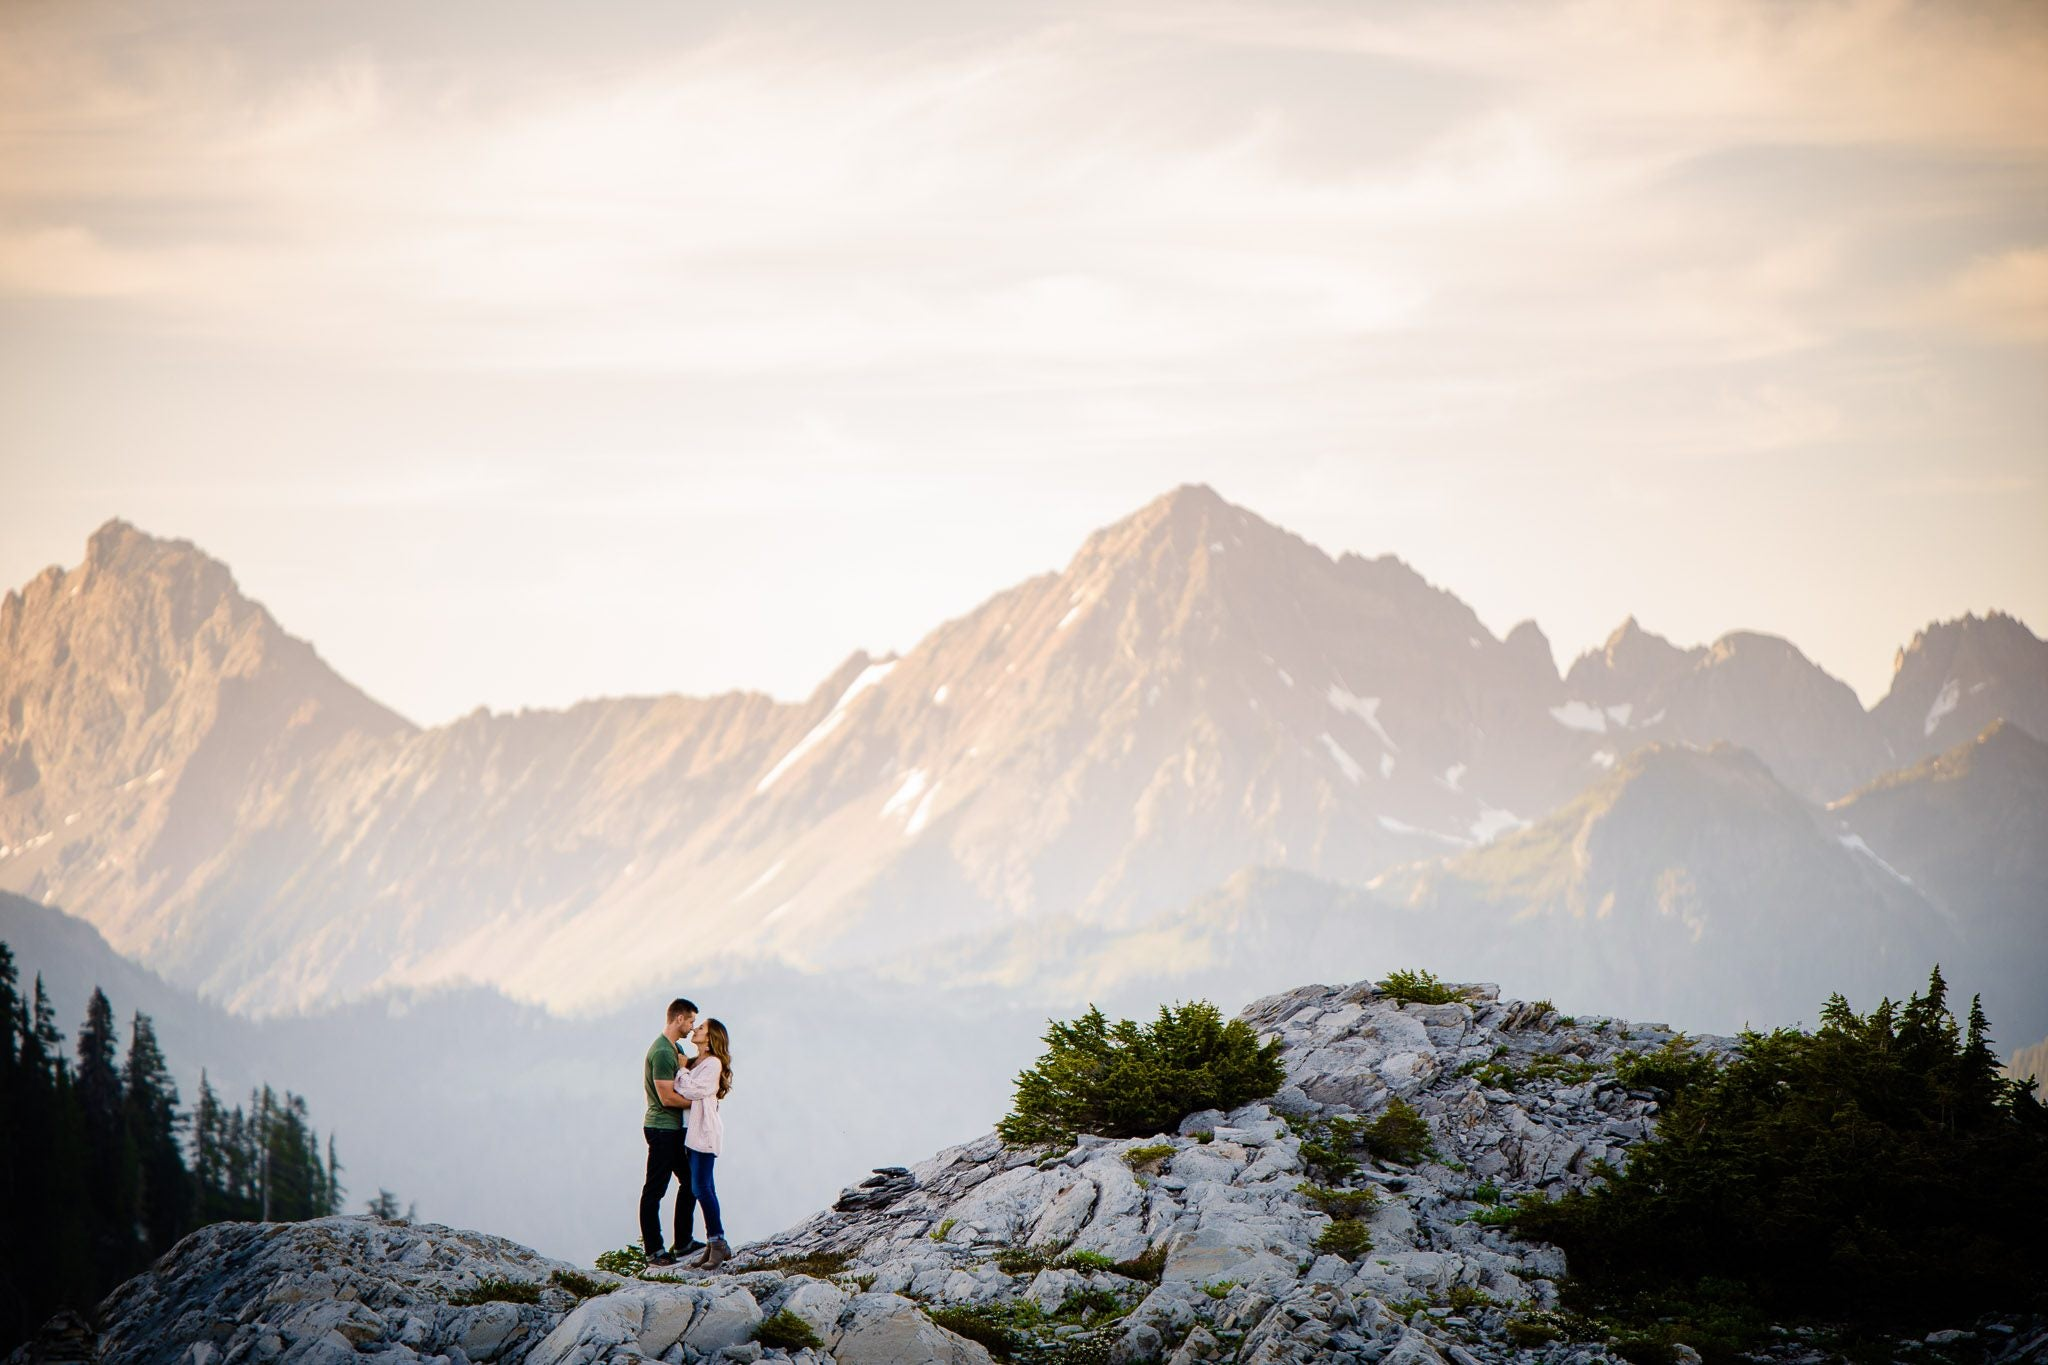 Couples posing on top of a cliff - one of the captures by Joe and Darryl Ann (a husband and wife team) of Salt and Pine Photo